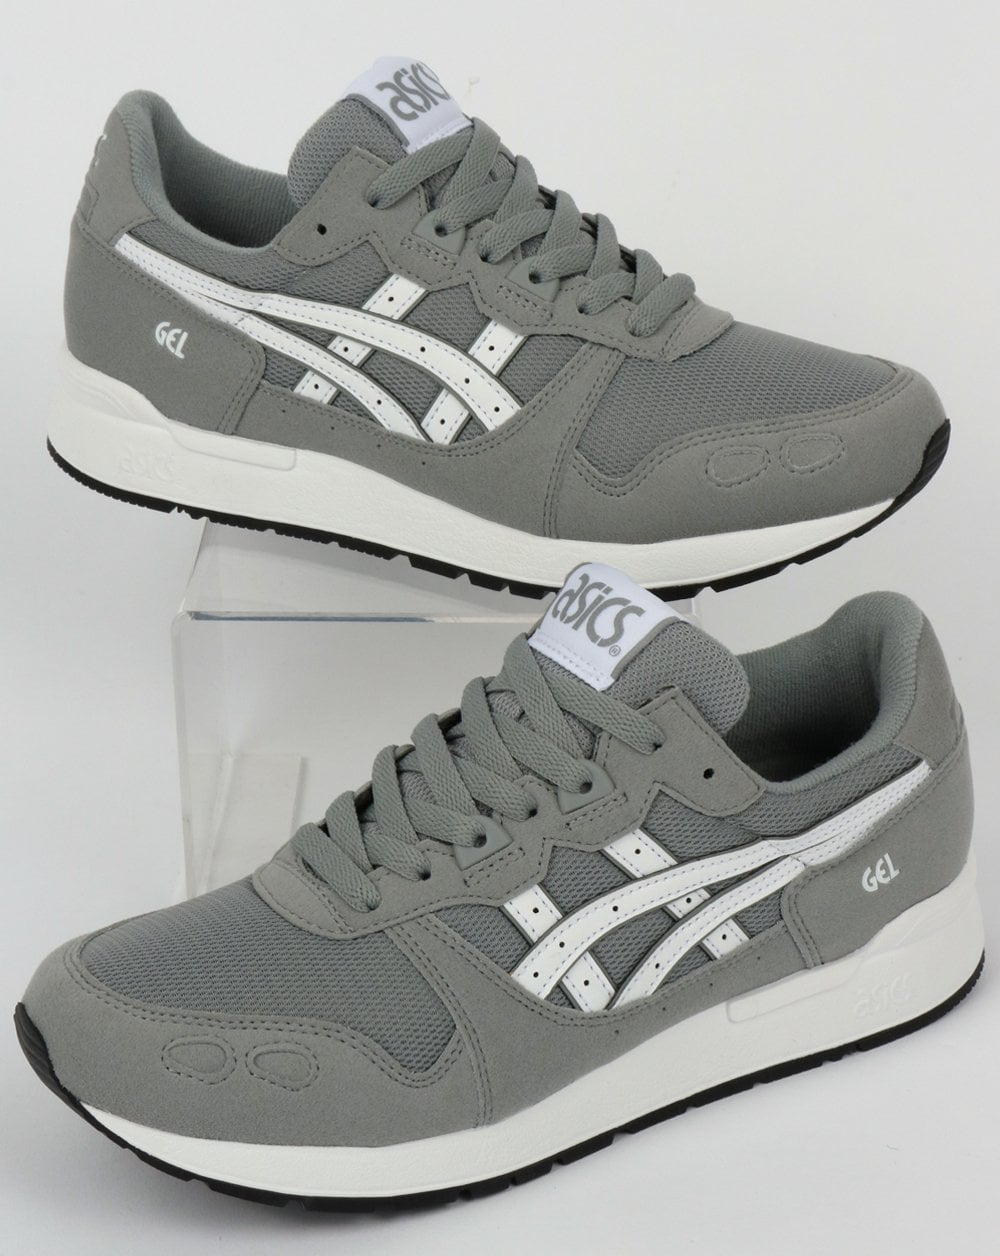 premium selection c9b7a 70d3d Asics Gel-Lyte Trainers Stone Grey/White